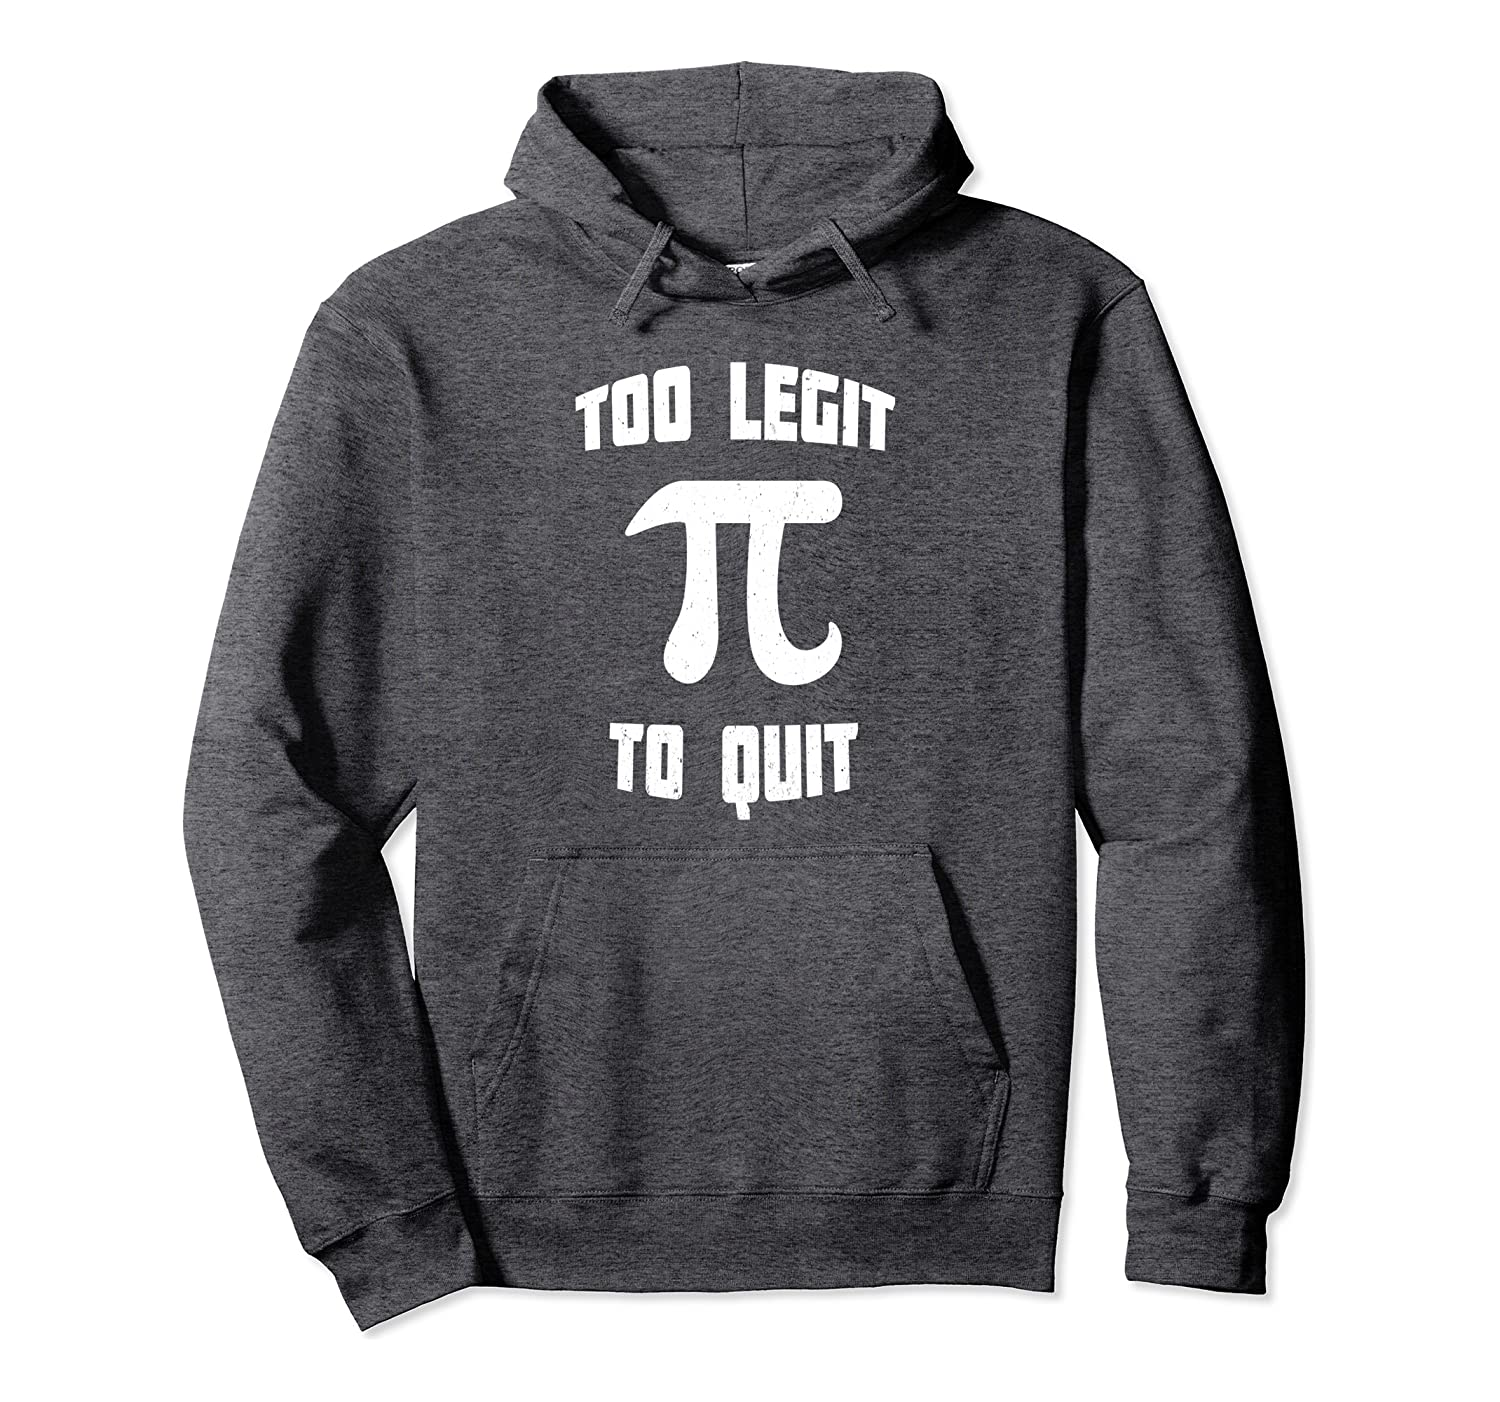 Pi Too Legit To Quit 90's Pi Day 3/14 Math Nerd Geek Vintage Pullover Hoodie